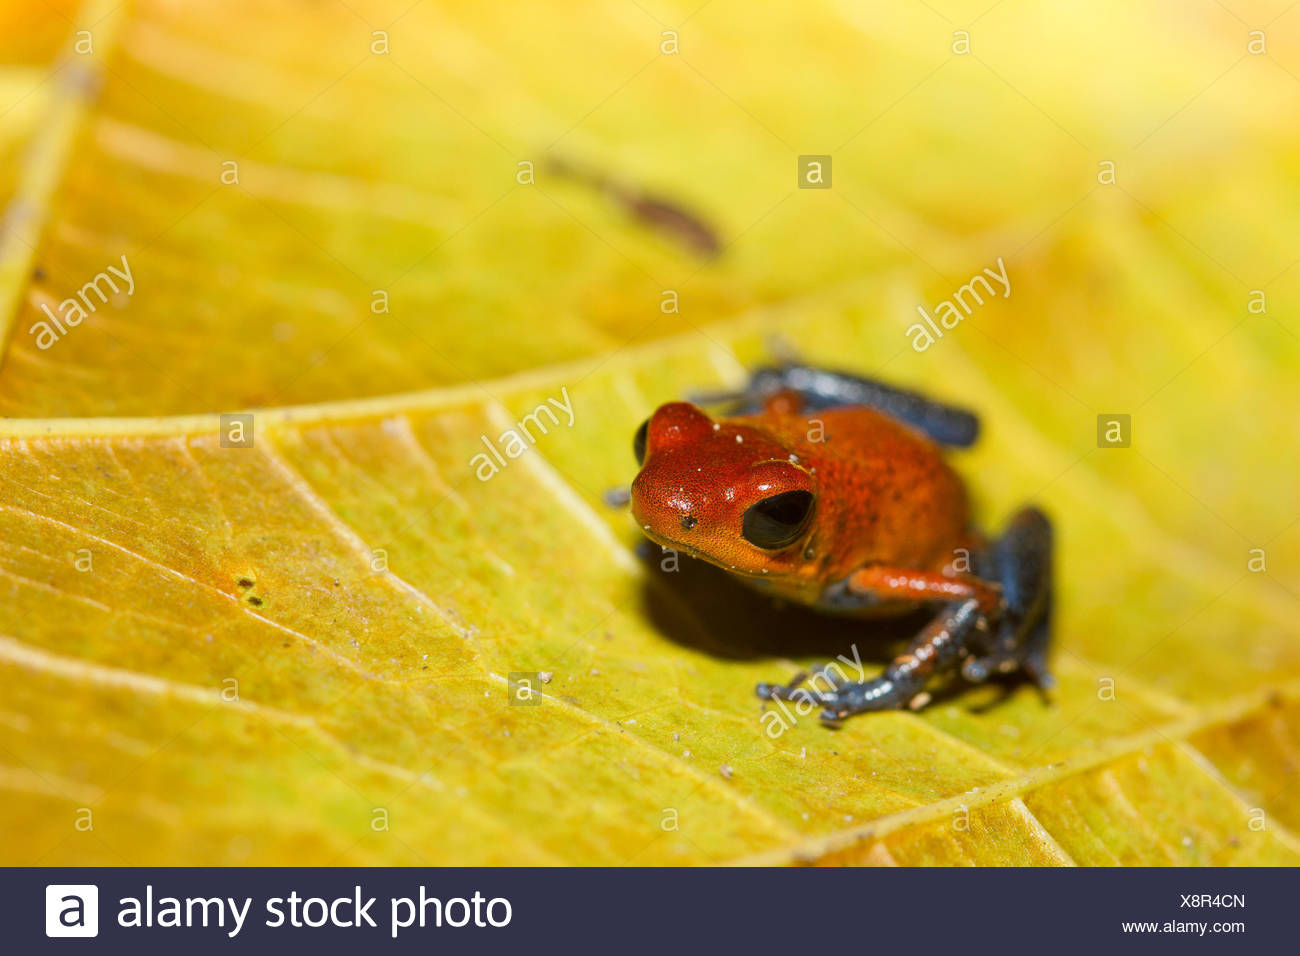 Strawberry poison dart frog, Oophaga pumilio, Costa Rica, Central America, - Stock Image